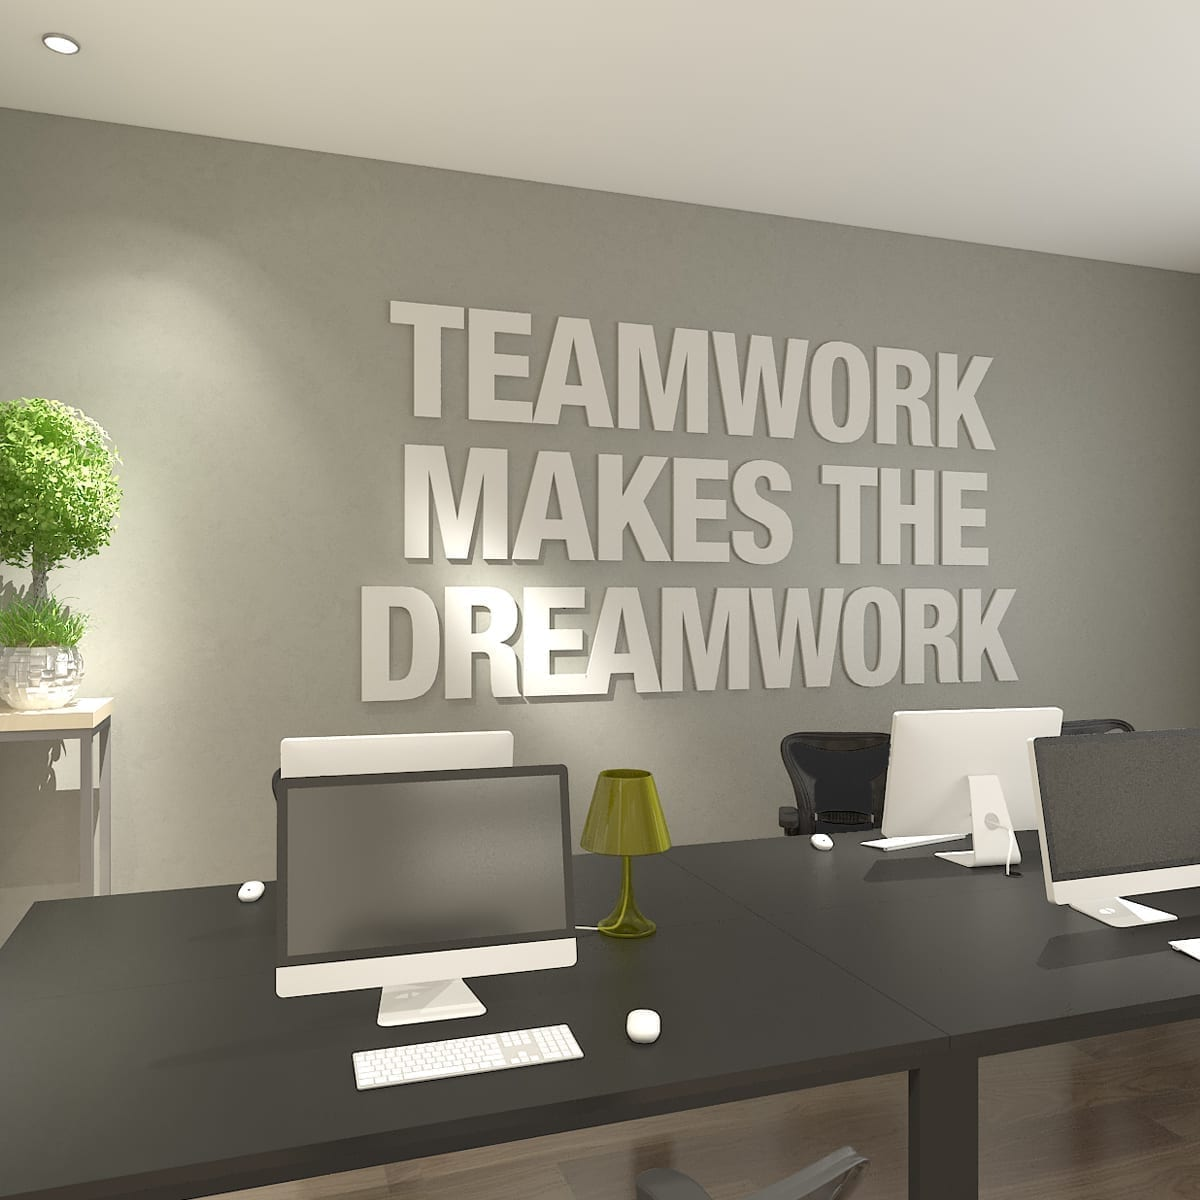 Büro Dekorieren Teamwork Makes The Dreamwork 3d Büro Dekoration